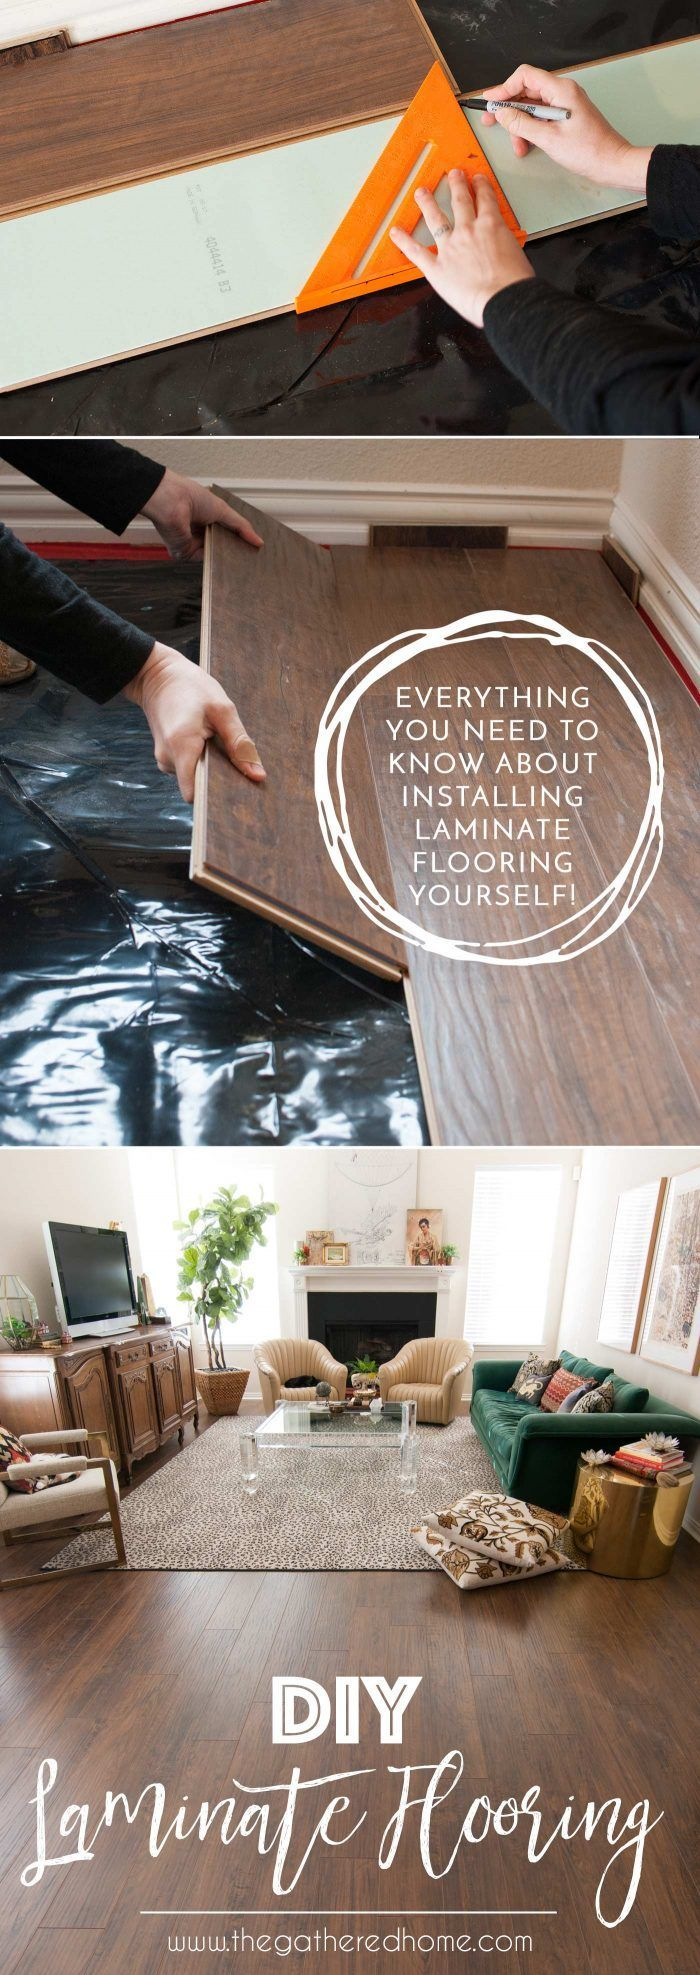 Thinking of laminate flooring? You won't want to miss this post! It's full of information on how to tackle laminate flooring yourself... From concrete subfloor leveling to laying the laminate planks, it's all in this post! Pin for later!